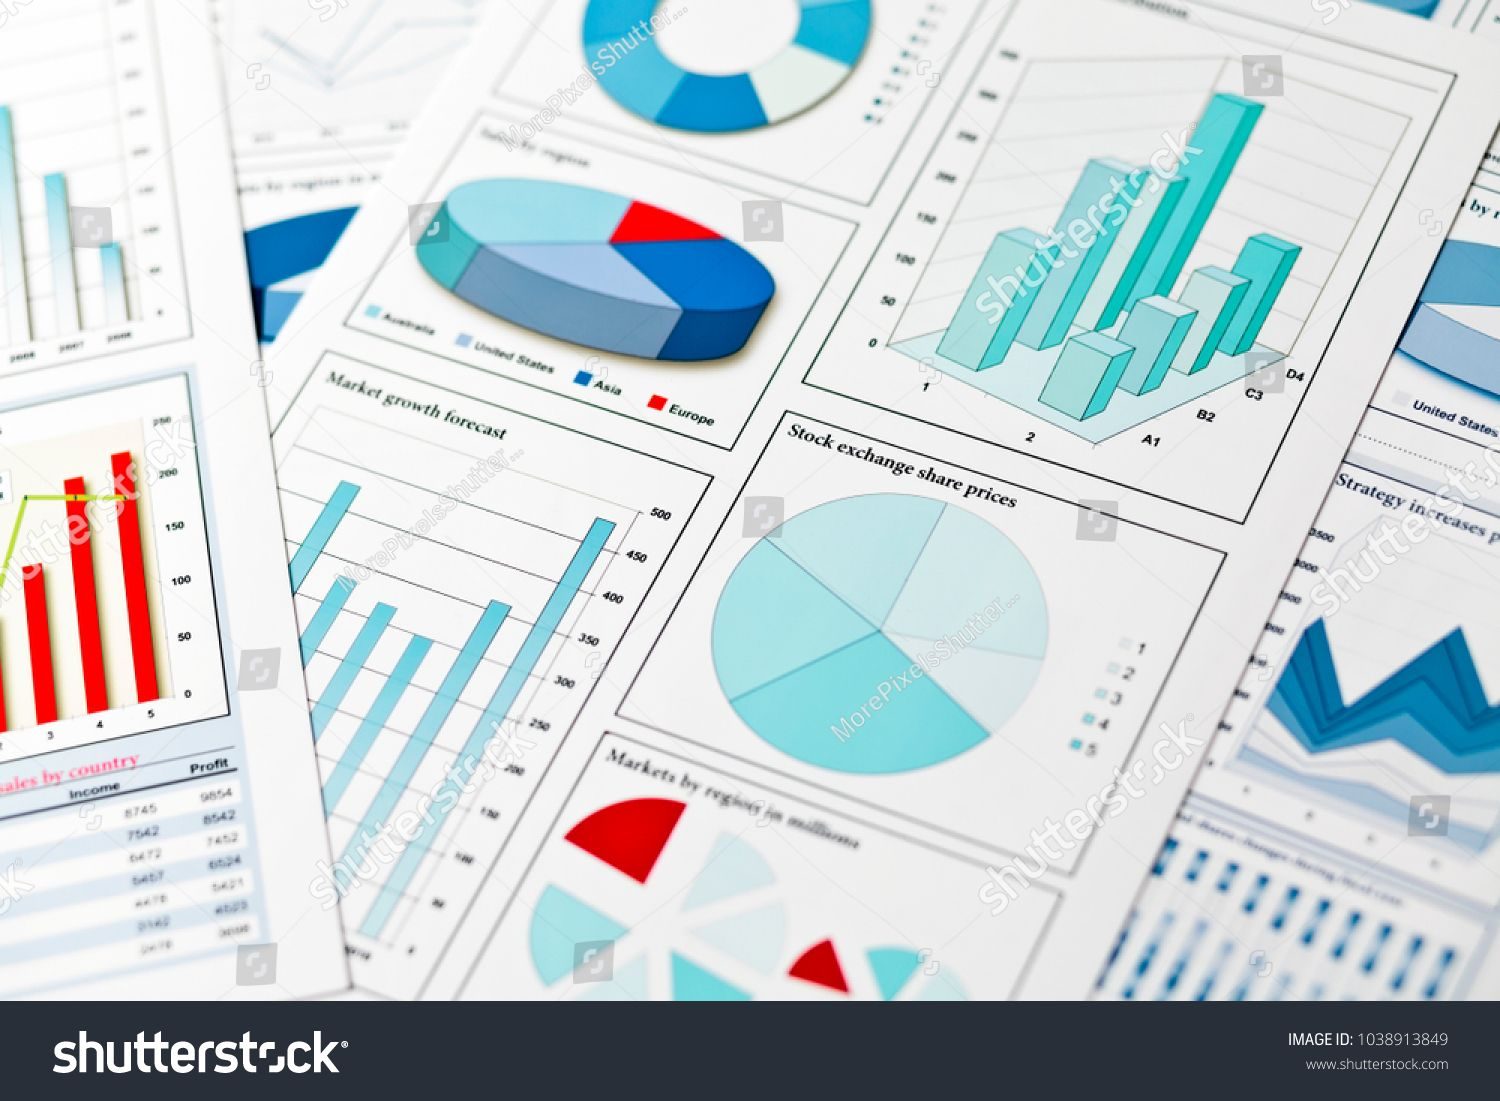 Graphs And Charts Finance Concept Charts Graphs Concept Finance